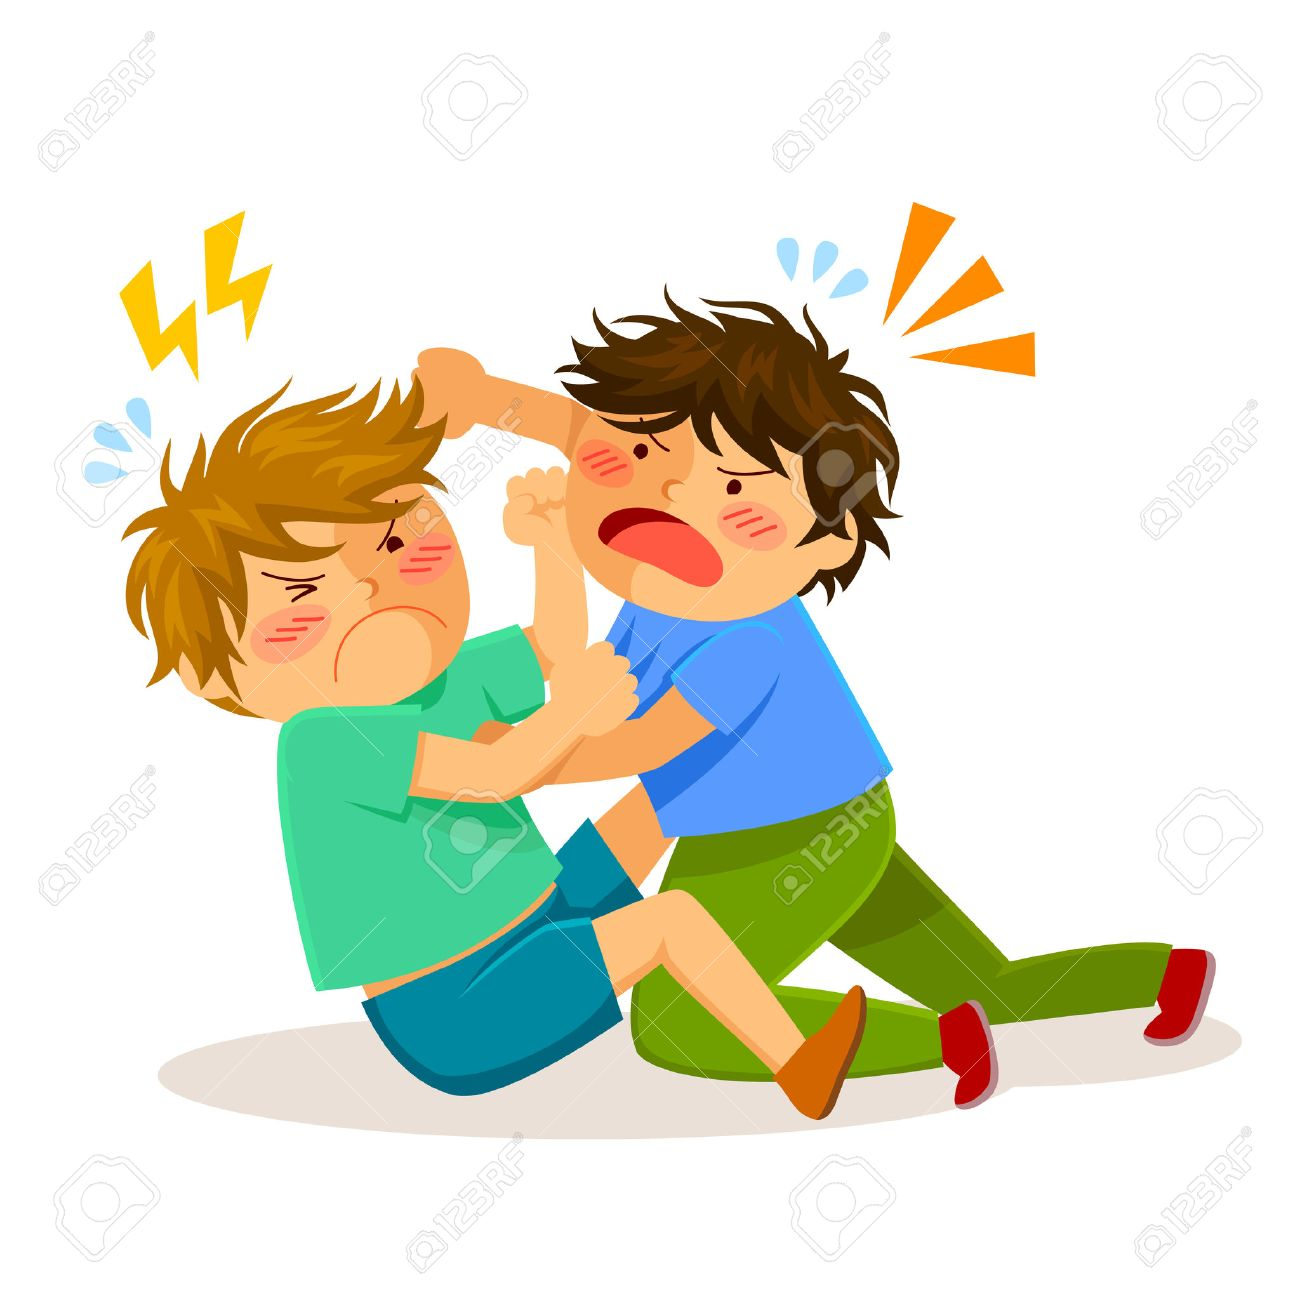 Two Boys Hitting Each Other On A Fight Royalty Free Cliparts, Vectors, And  Stock Illustration. Image 58032487.